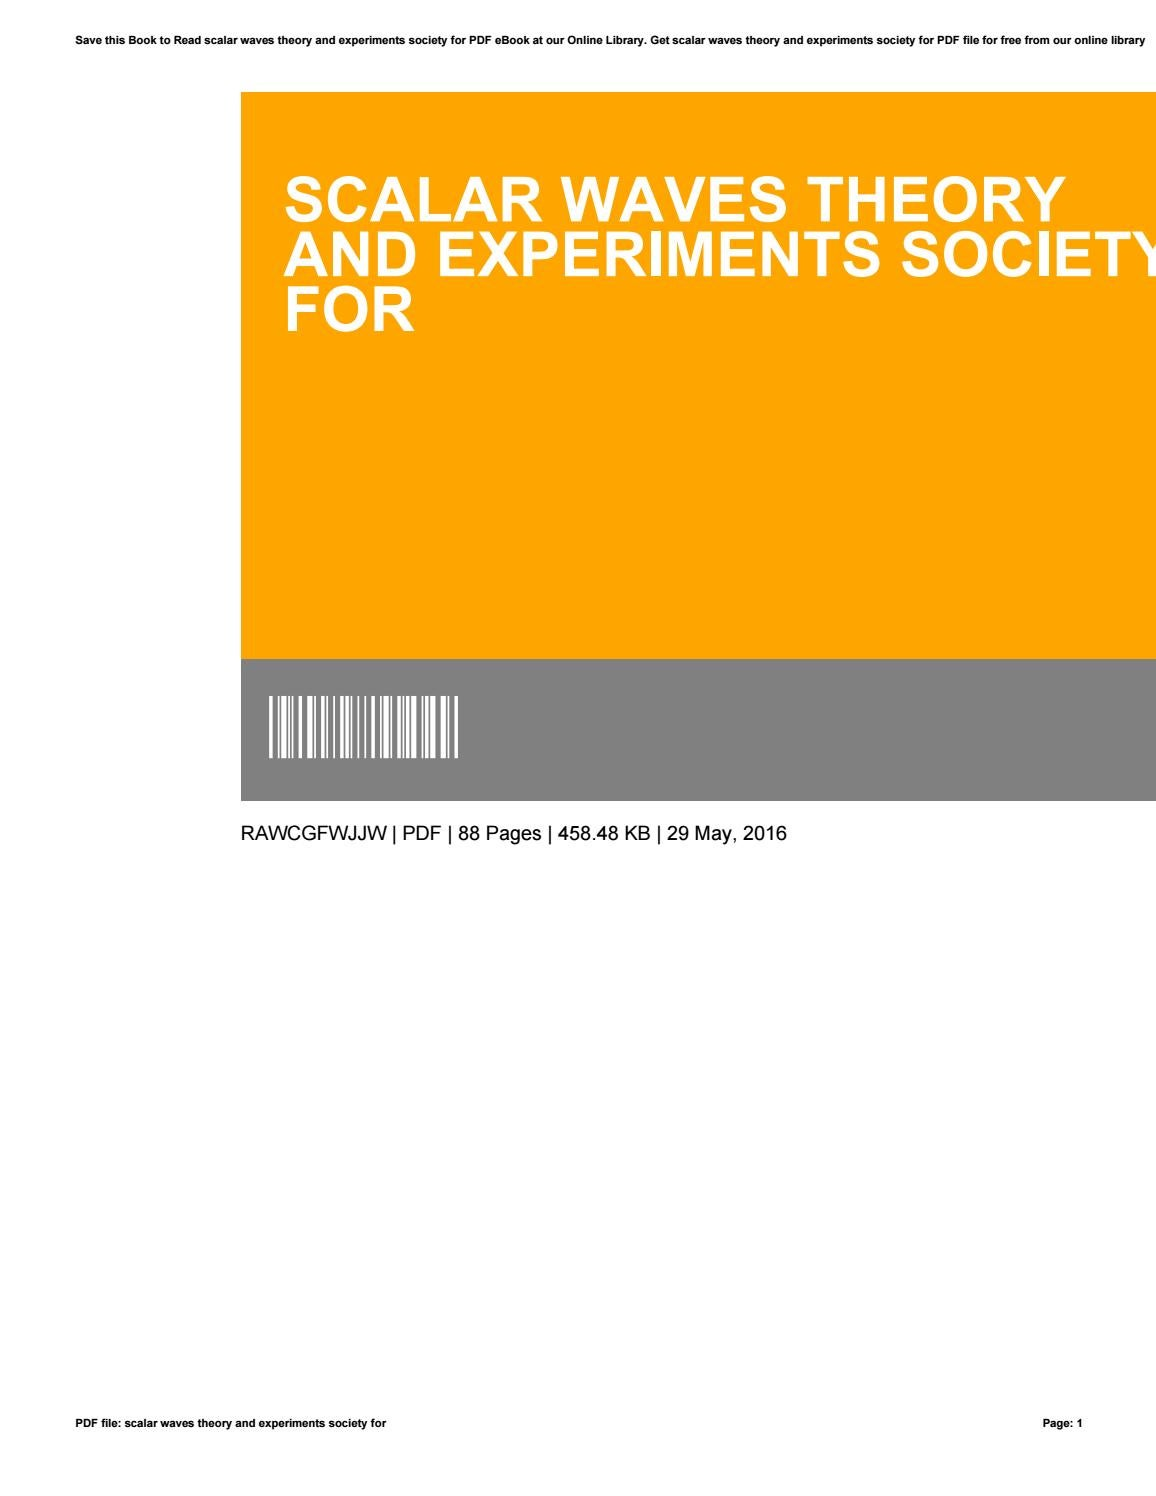 Scalar waves theory and experiments society for by